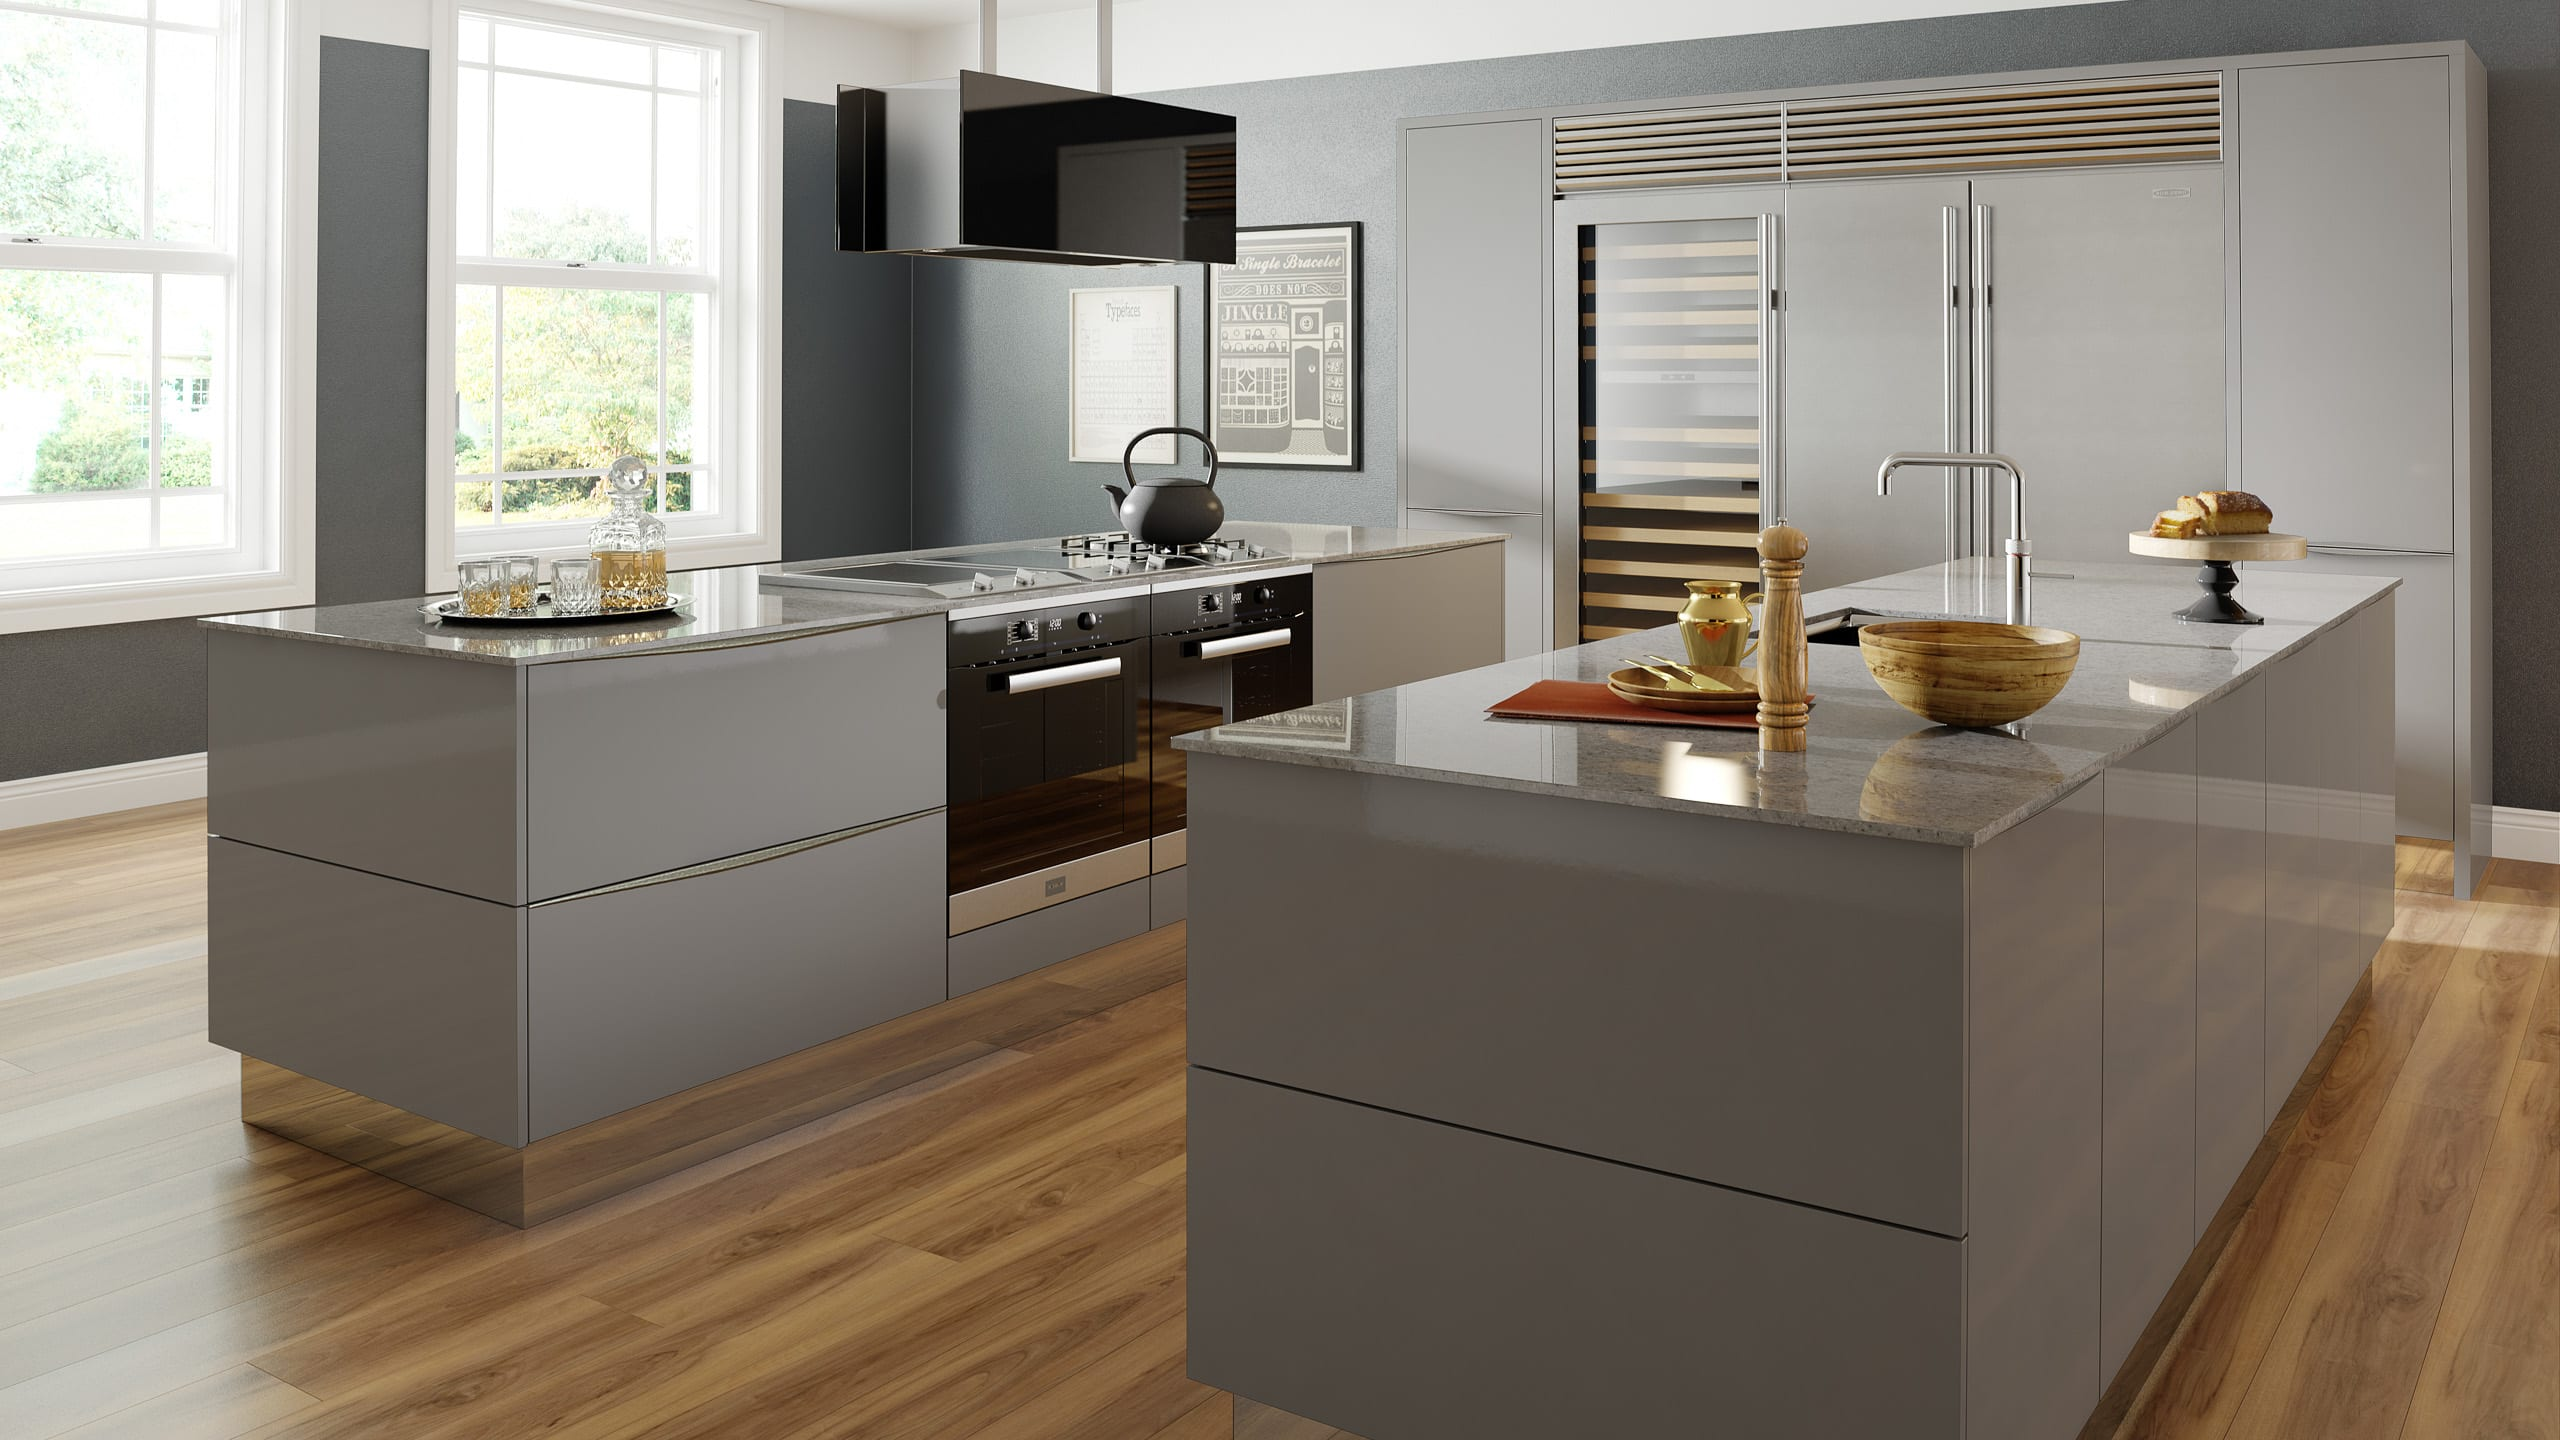 Mattonella Gloss Grey - contemporary kitchen